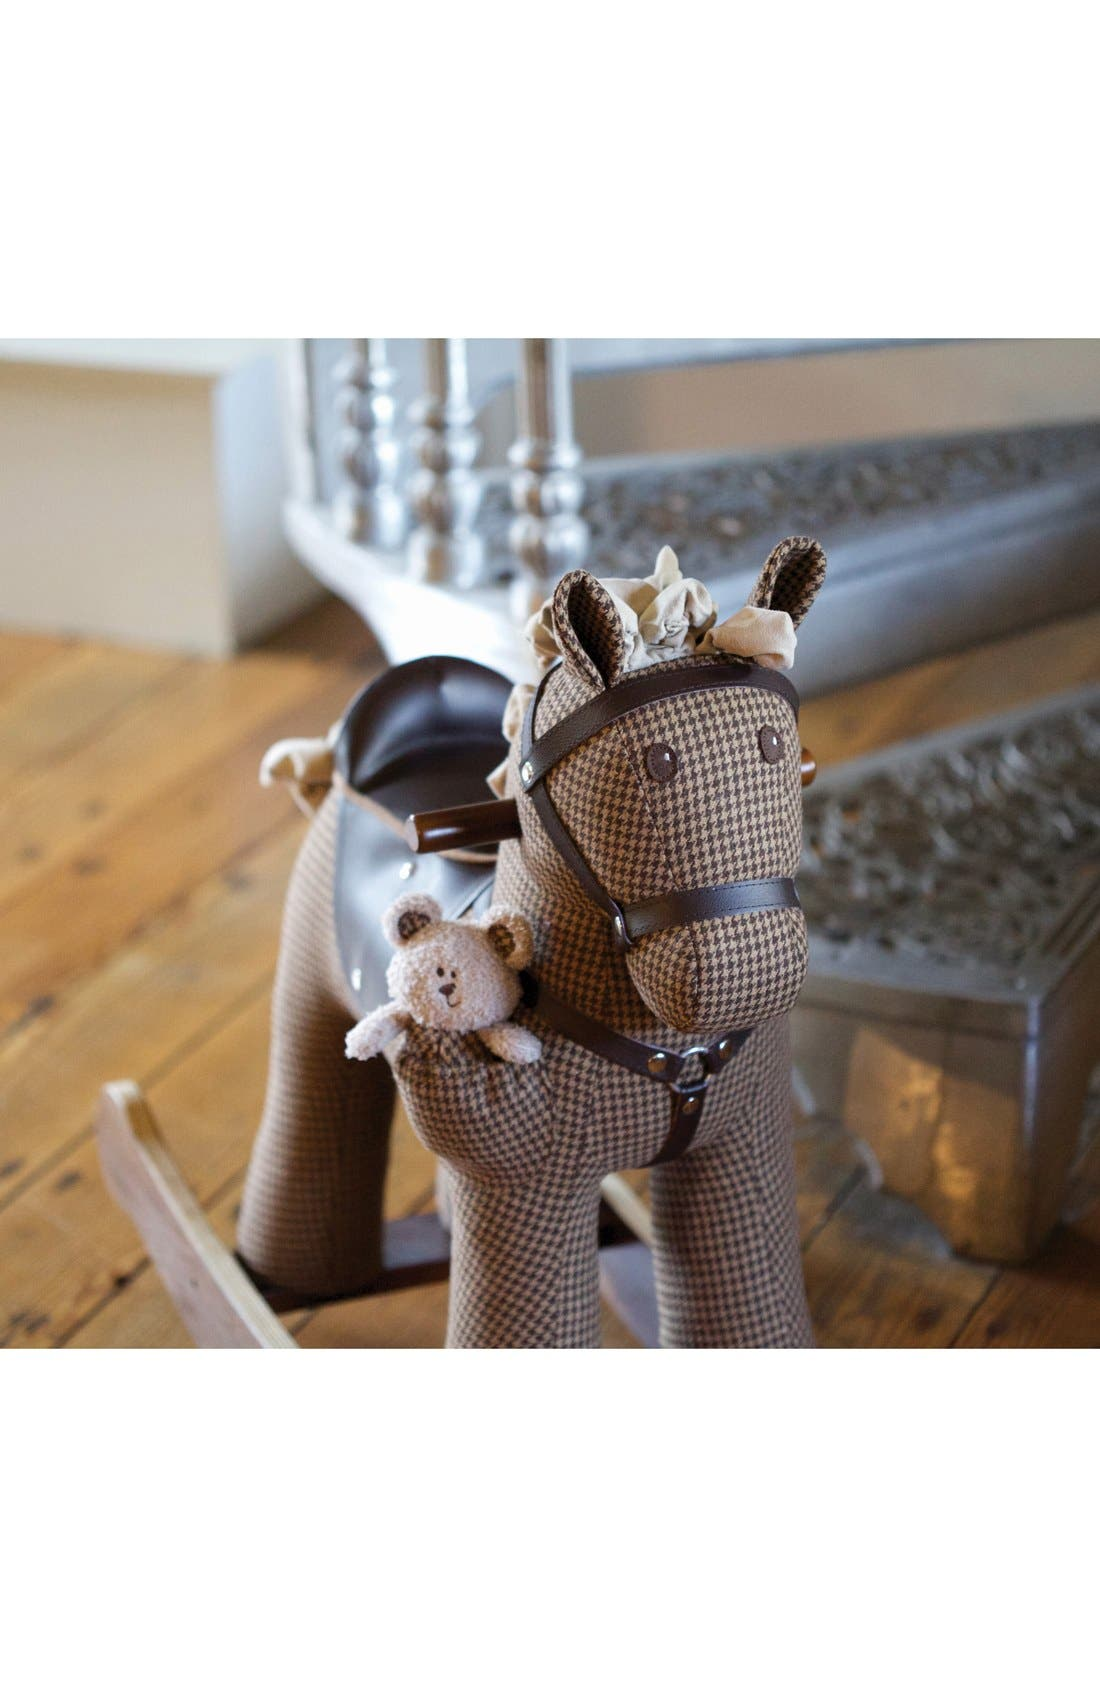 Rocking Horse & Stuffed Animal,                             Alternate thumbnail 4, color,                             Houndstooth